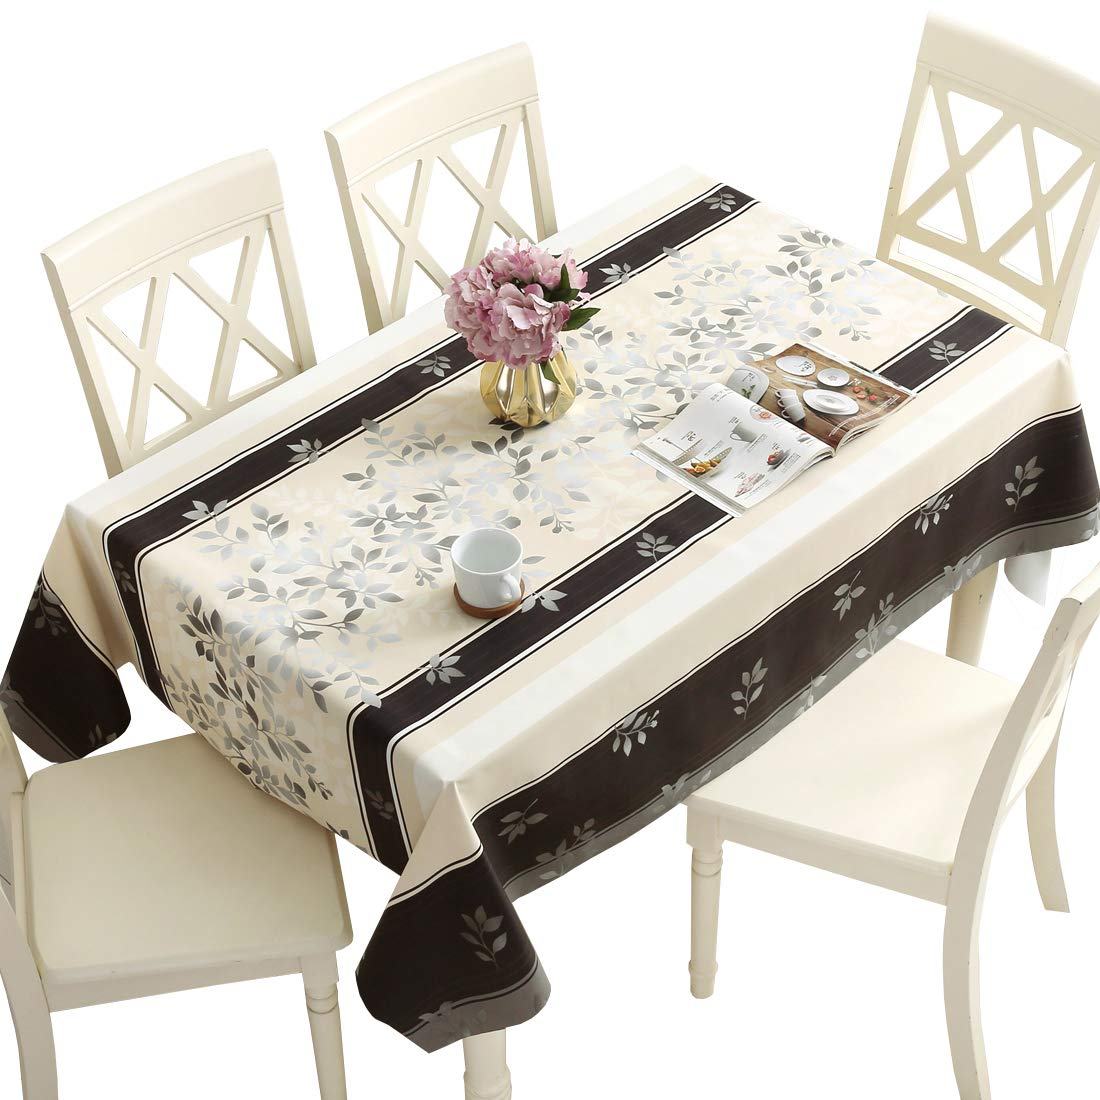 DUOFIRE Vinyl Tablecloth Rectangle Heavy Weight Table Cover Wipe Clean Waterproof (54 x 102 Inch, Color-no.016)